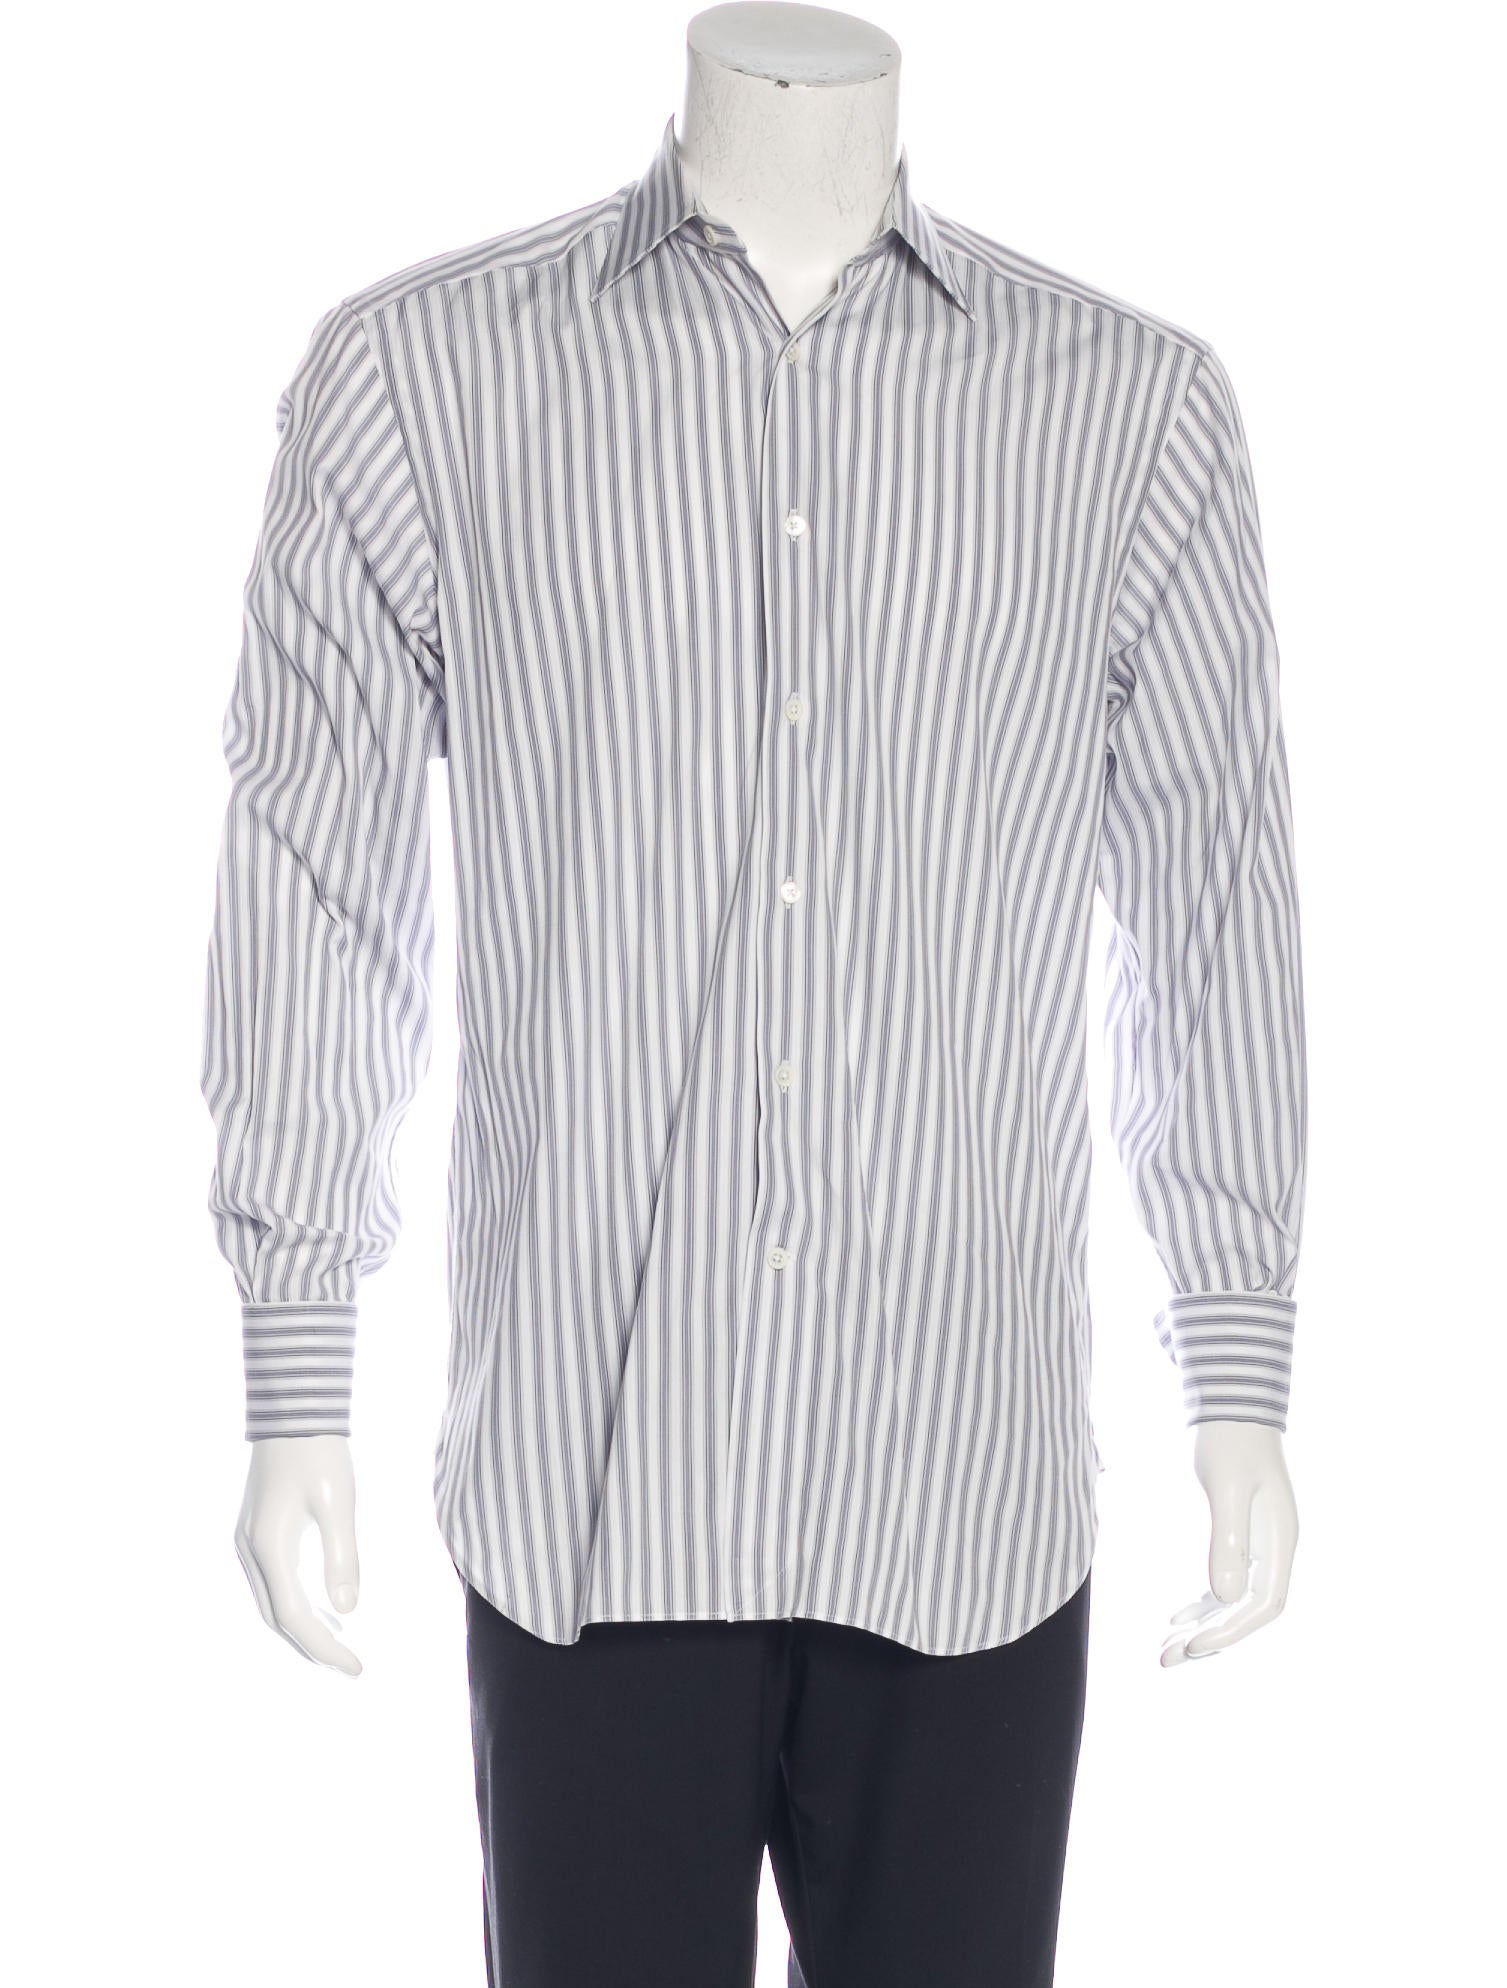 Ermenegildo zegna striped french cuff shirt clothing for What is a french cuff shirt